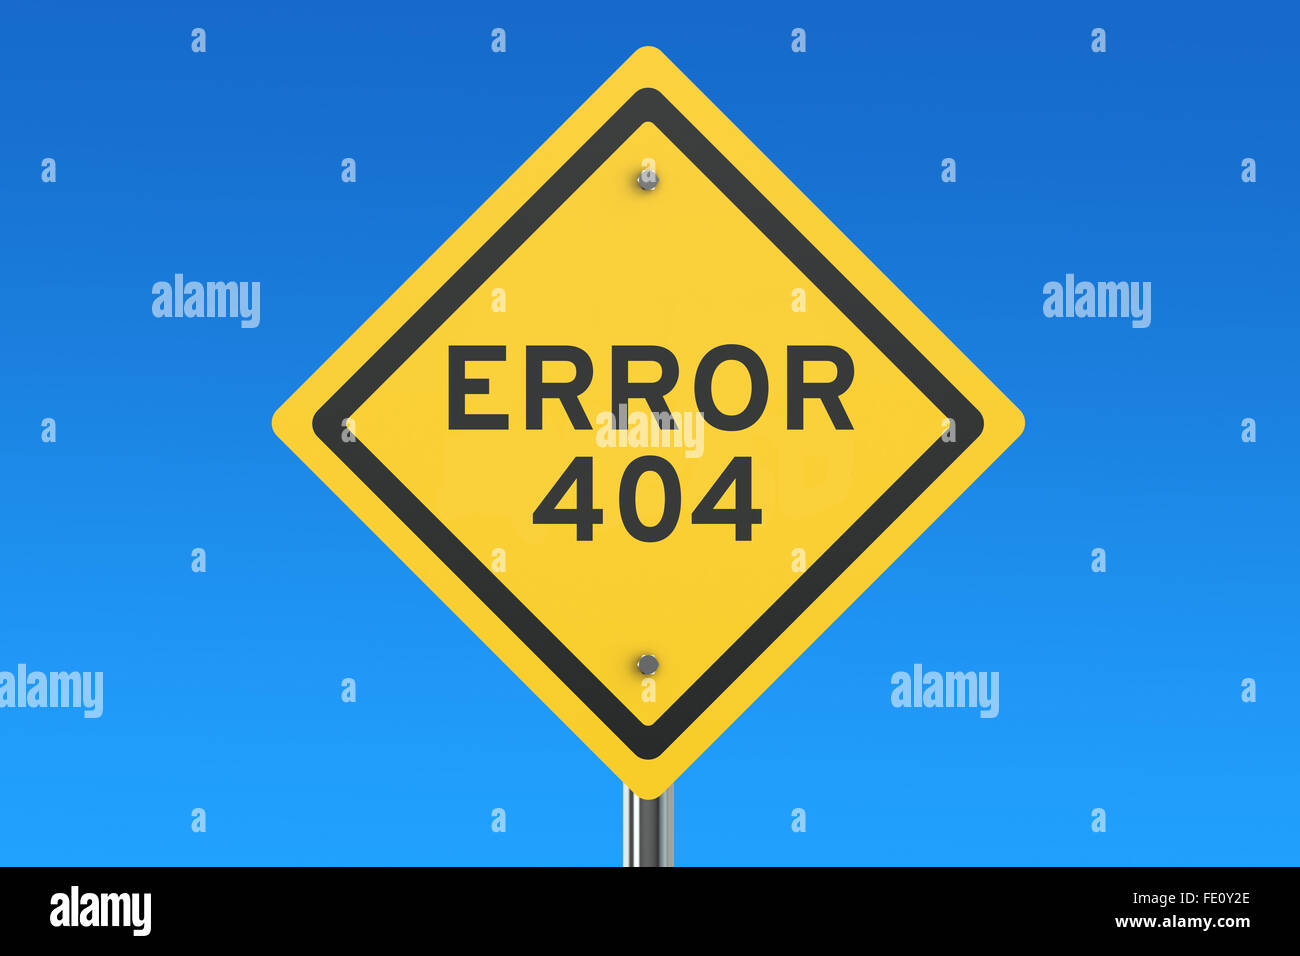 Error 404 concept on the road sign isolated on blue sky - Stock Image